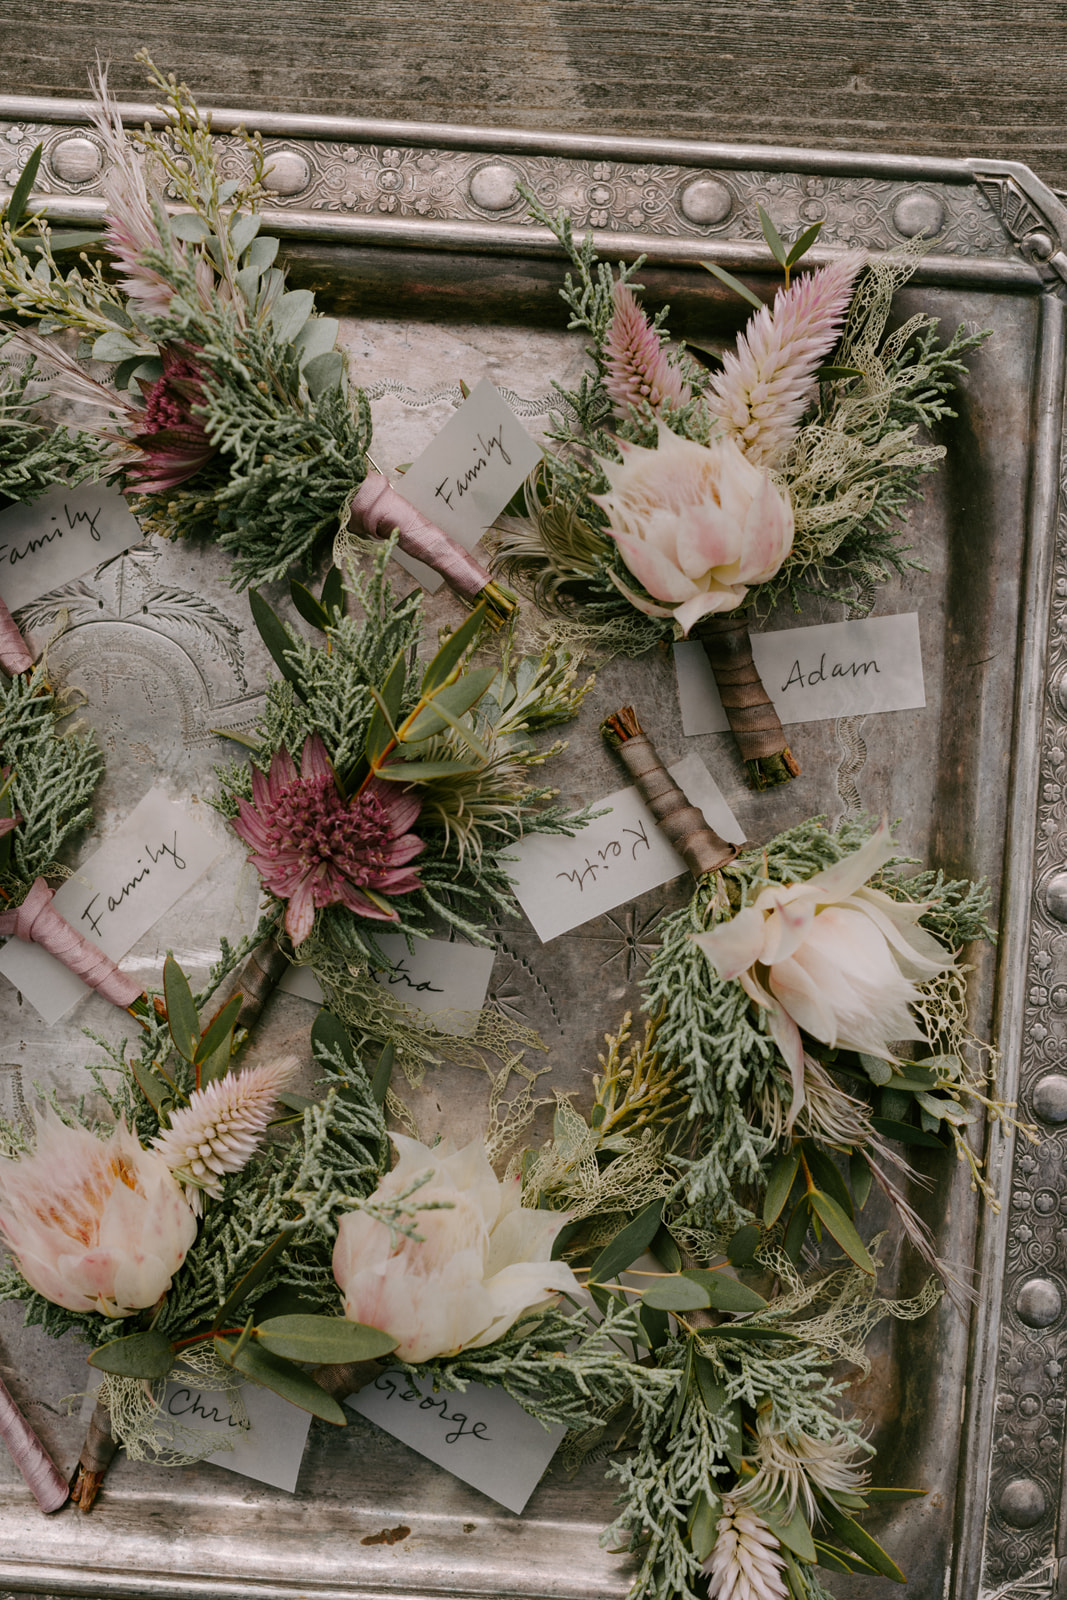 Romantic greenery boutonnieres by Venn Floral photographed by Kristen Marie Parker at Heritage House Resort on the Mendocino Coast.